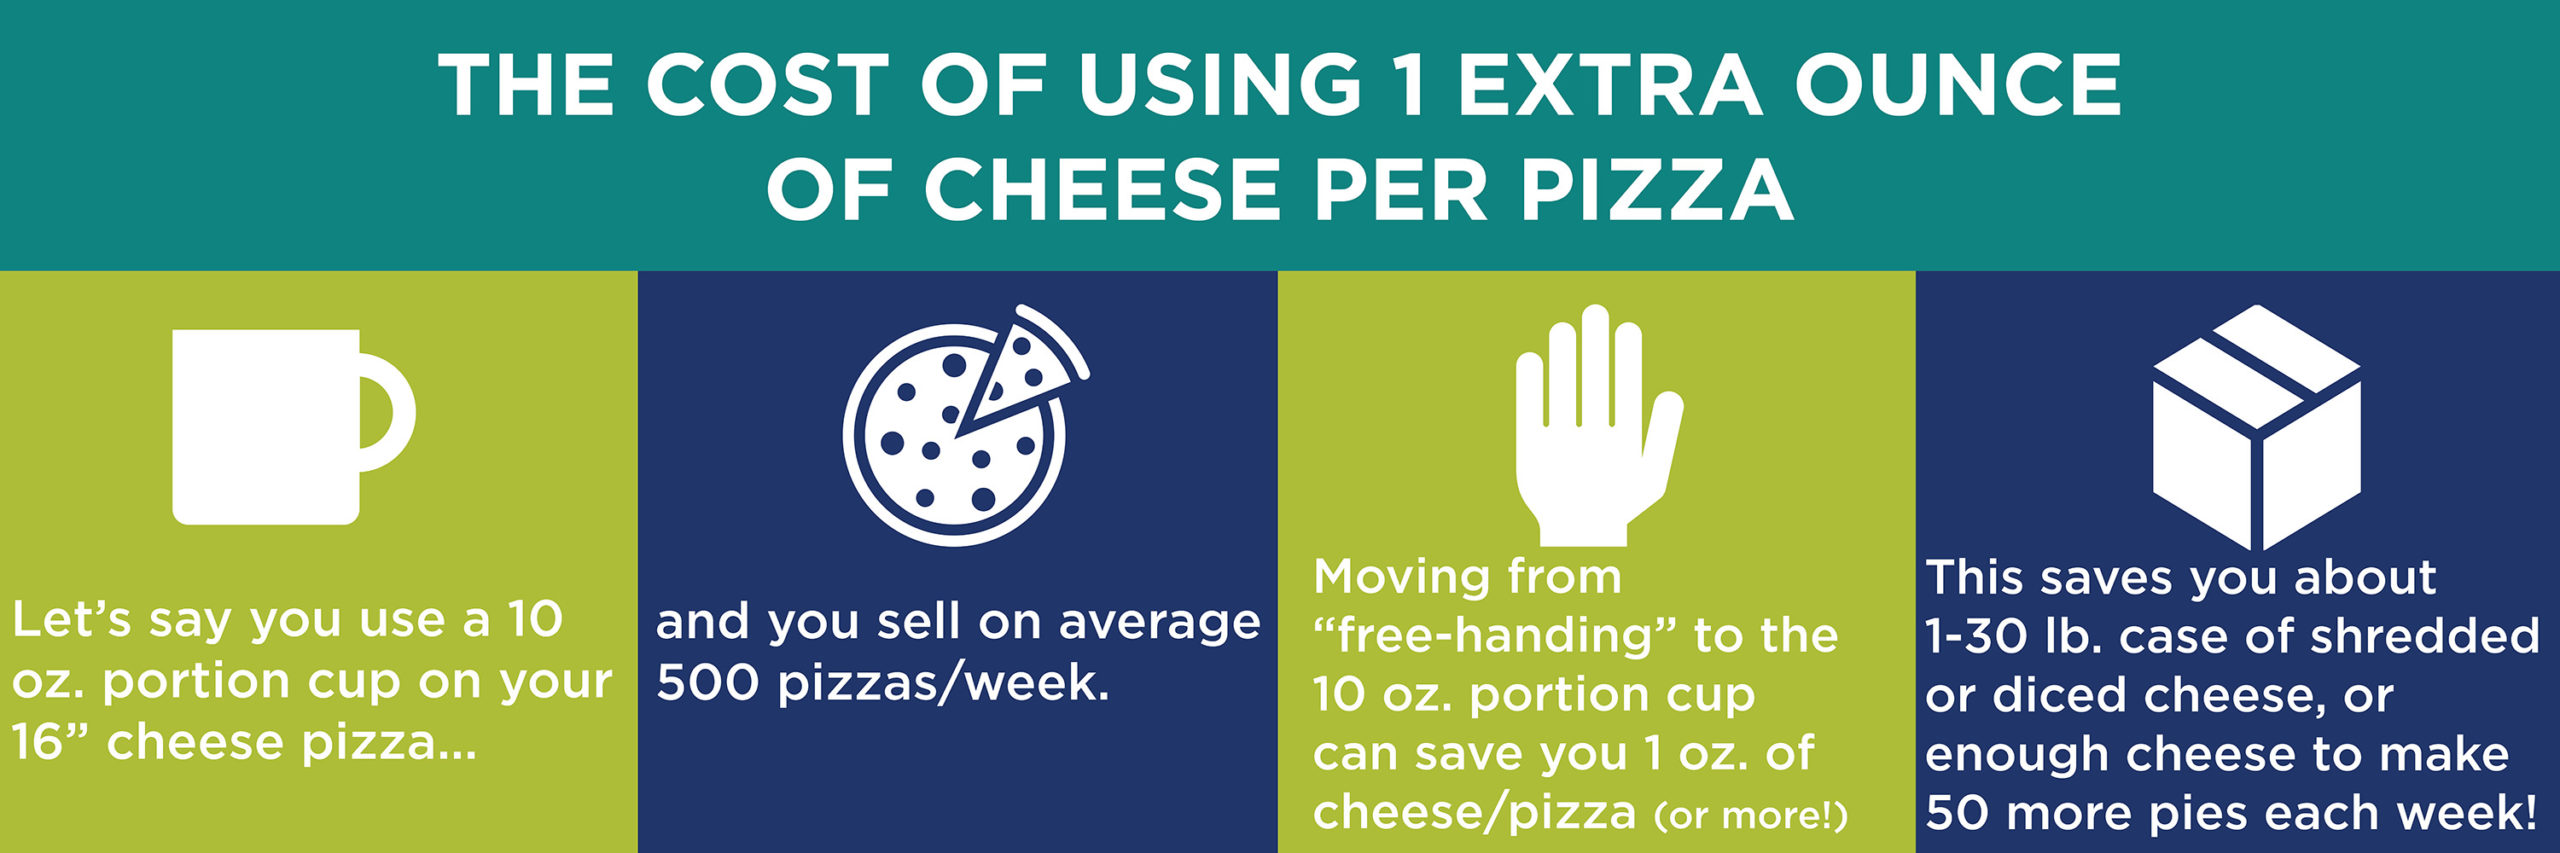 Cost of Cheese Infographic-v4